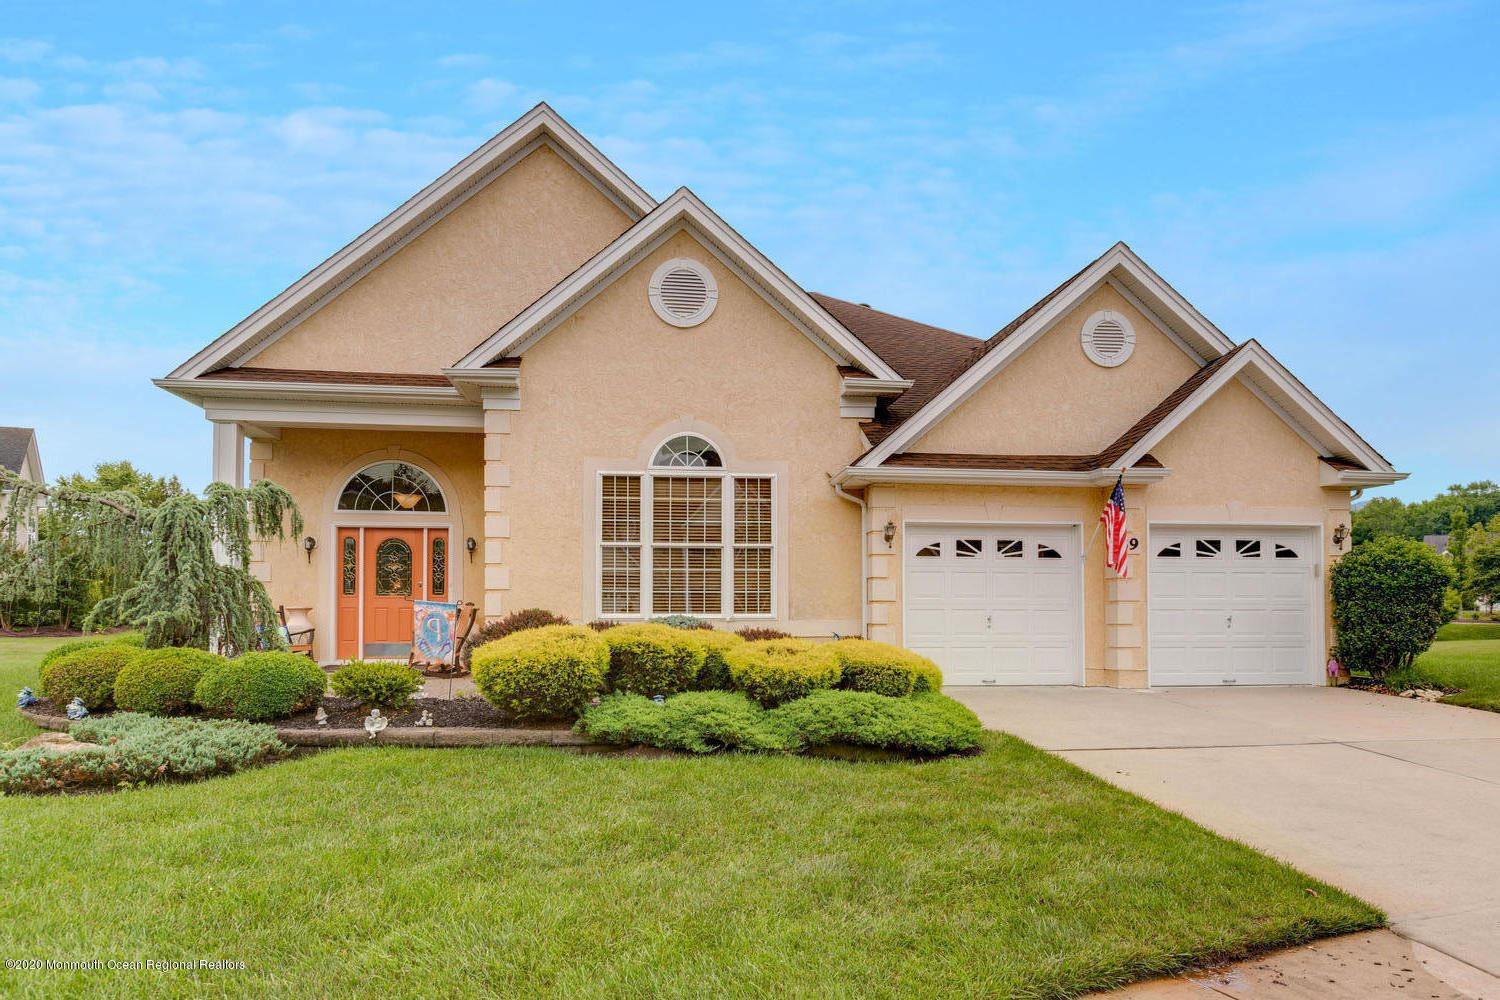 39 Dunberry Drive, Freehold, NJ 07728 - MLS#: 22022349